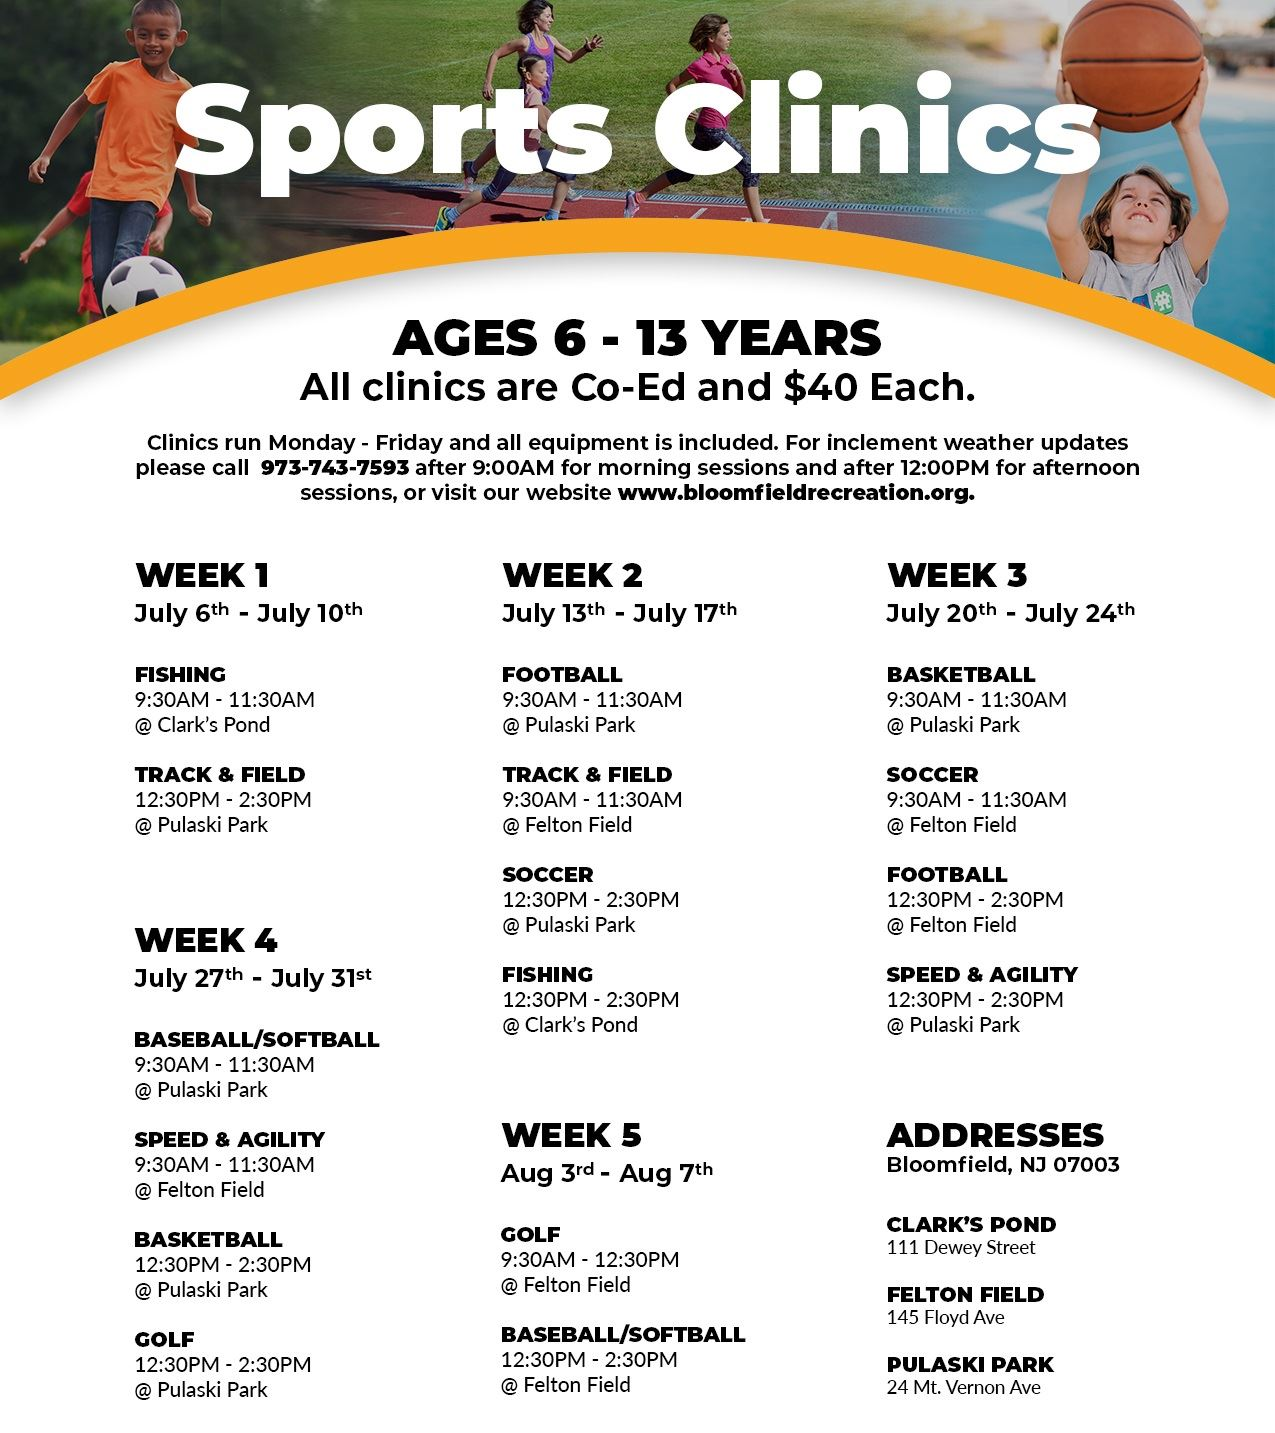 summer sports clinics website